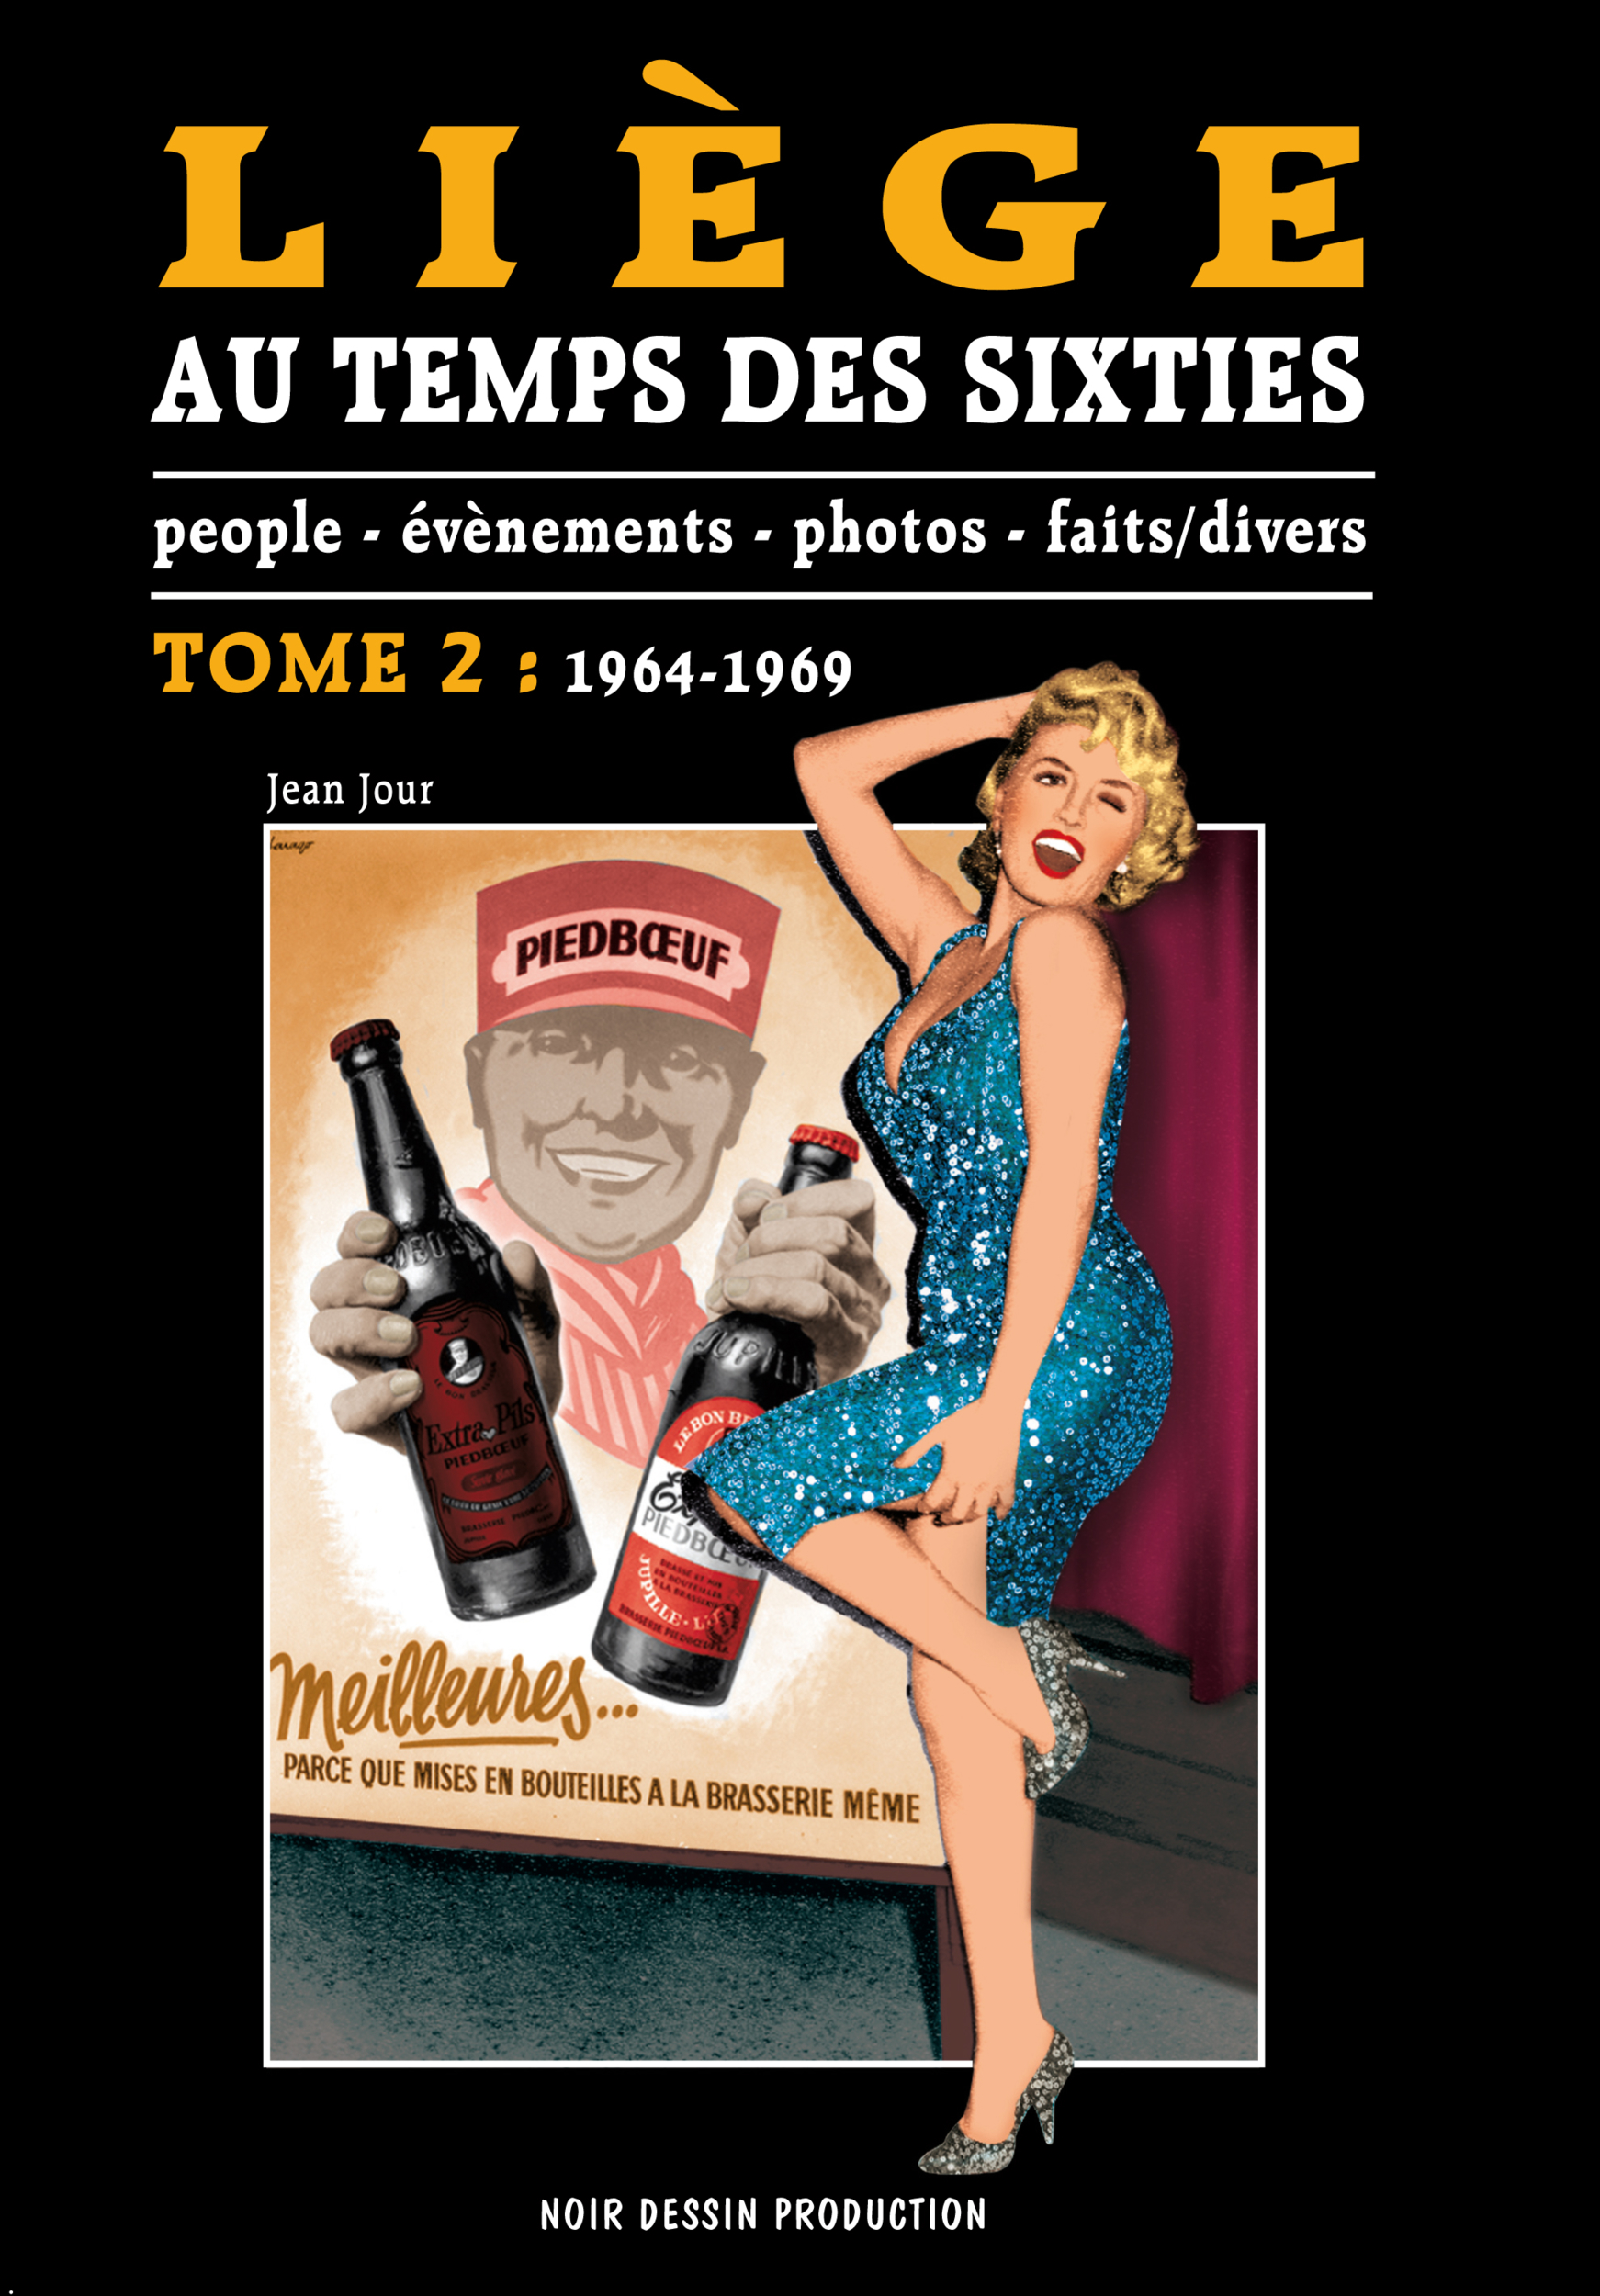 cover-sixties-tome 2-ok-26-03-2013